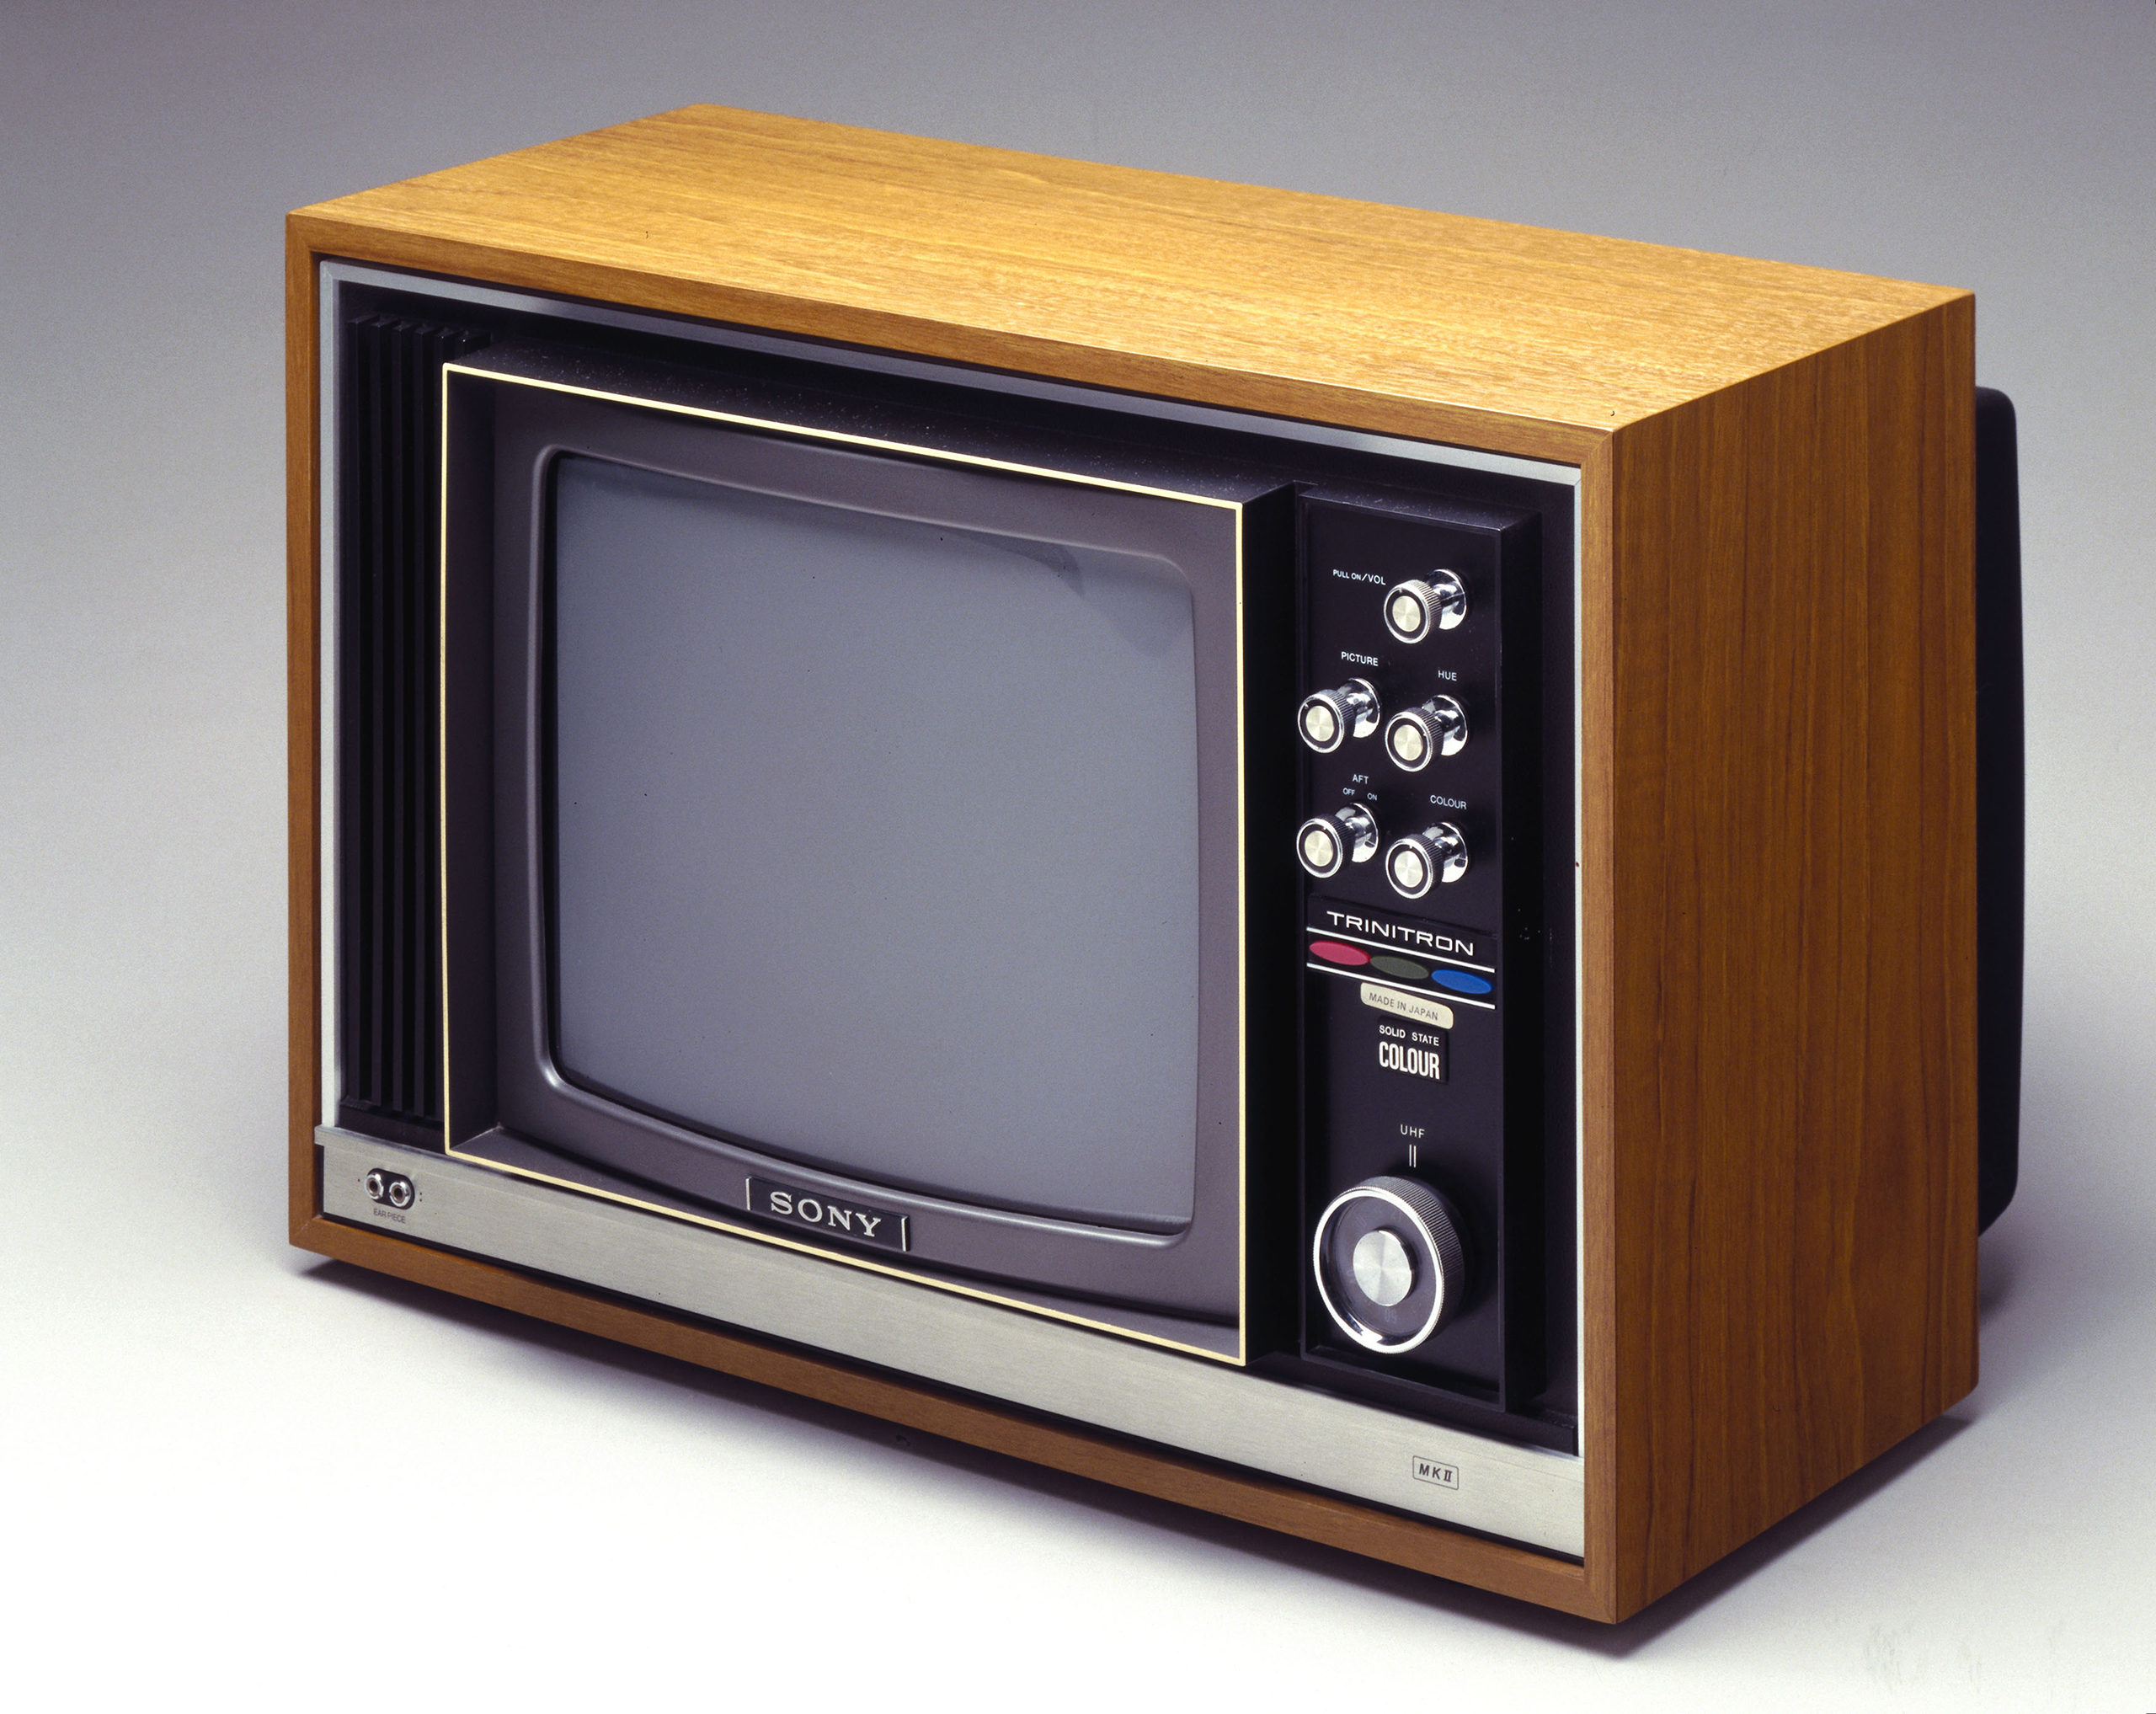 Sony colour television, 1970.